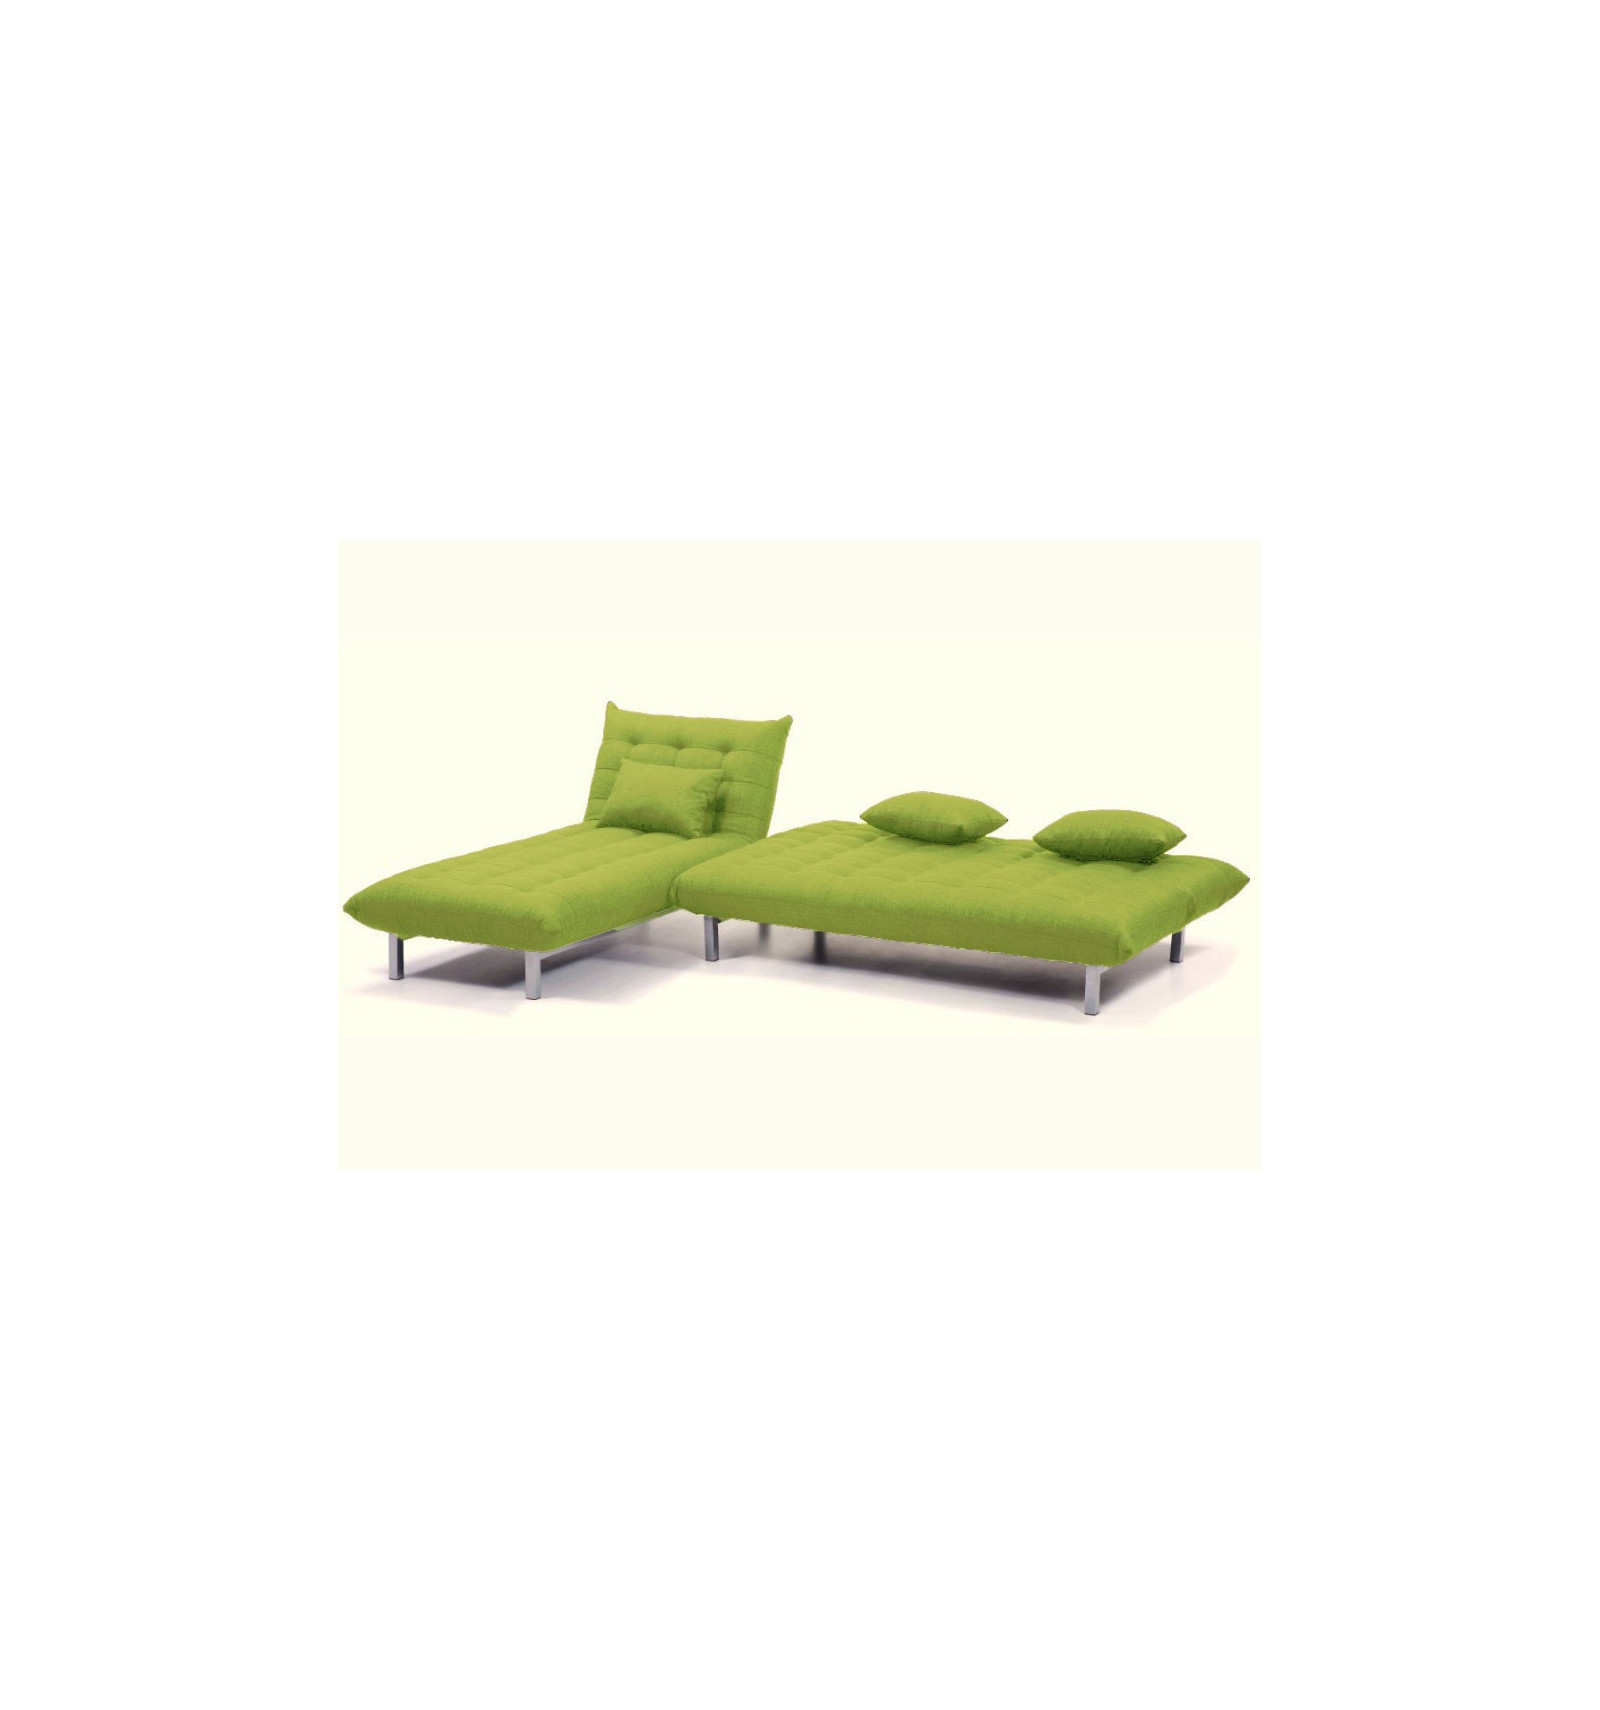 Sofa Cama Chaise Longue Contemporáneo sofa Cama Chaise Longue Peninsula Of 48  Magnífica sofa Cama Chaise Longue